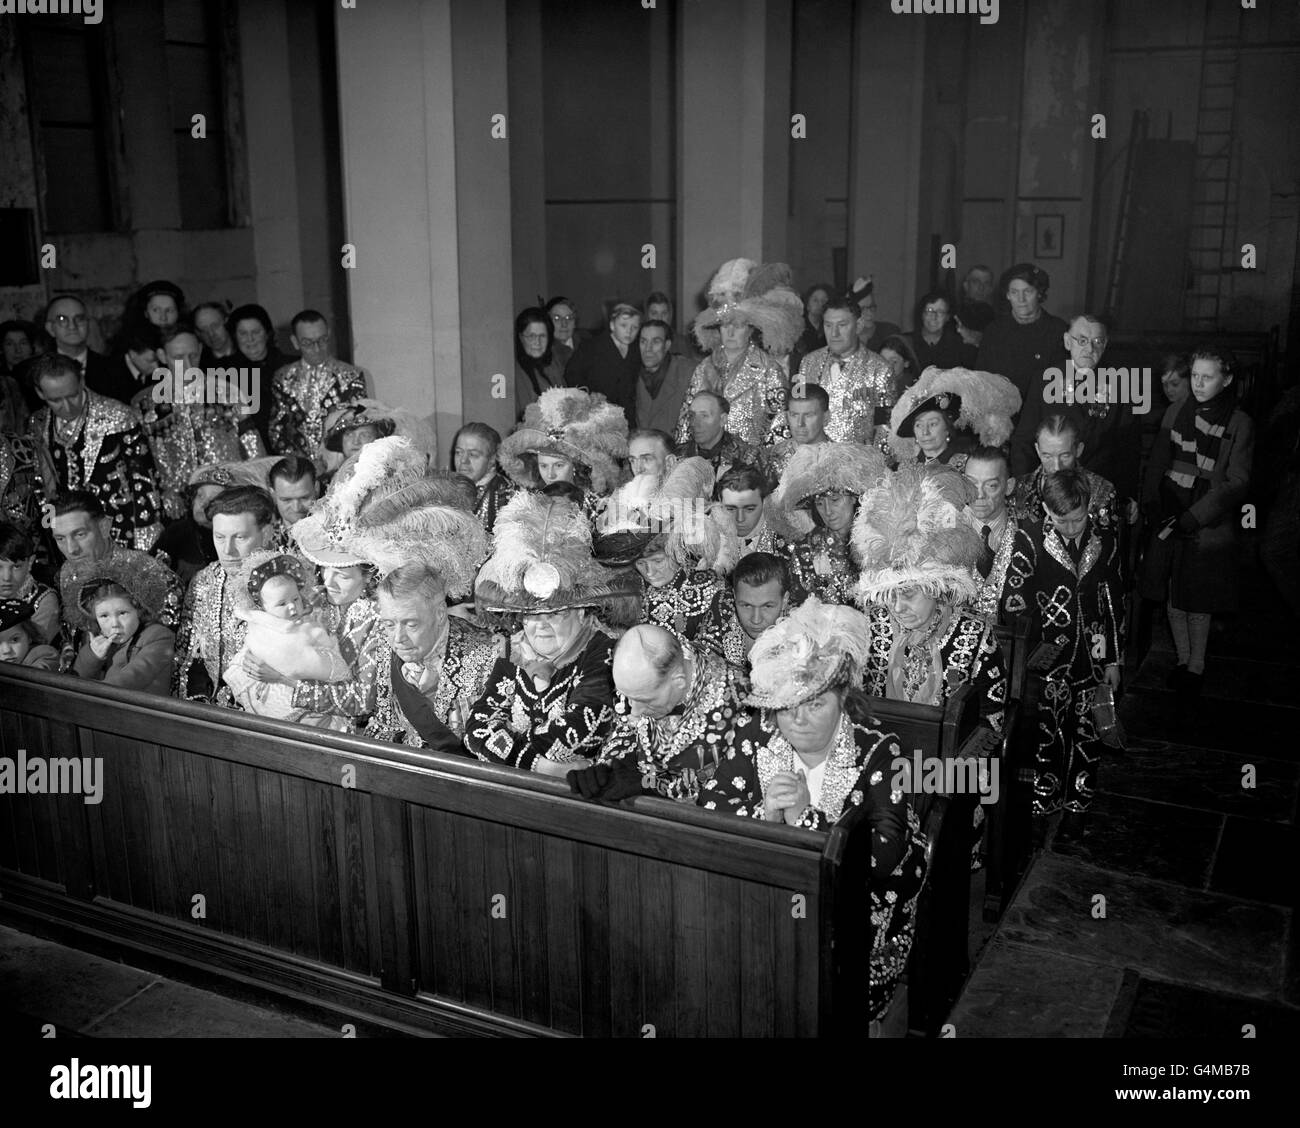 Royalty - Death of King George VI - London - Stock Image